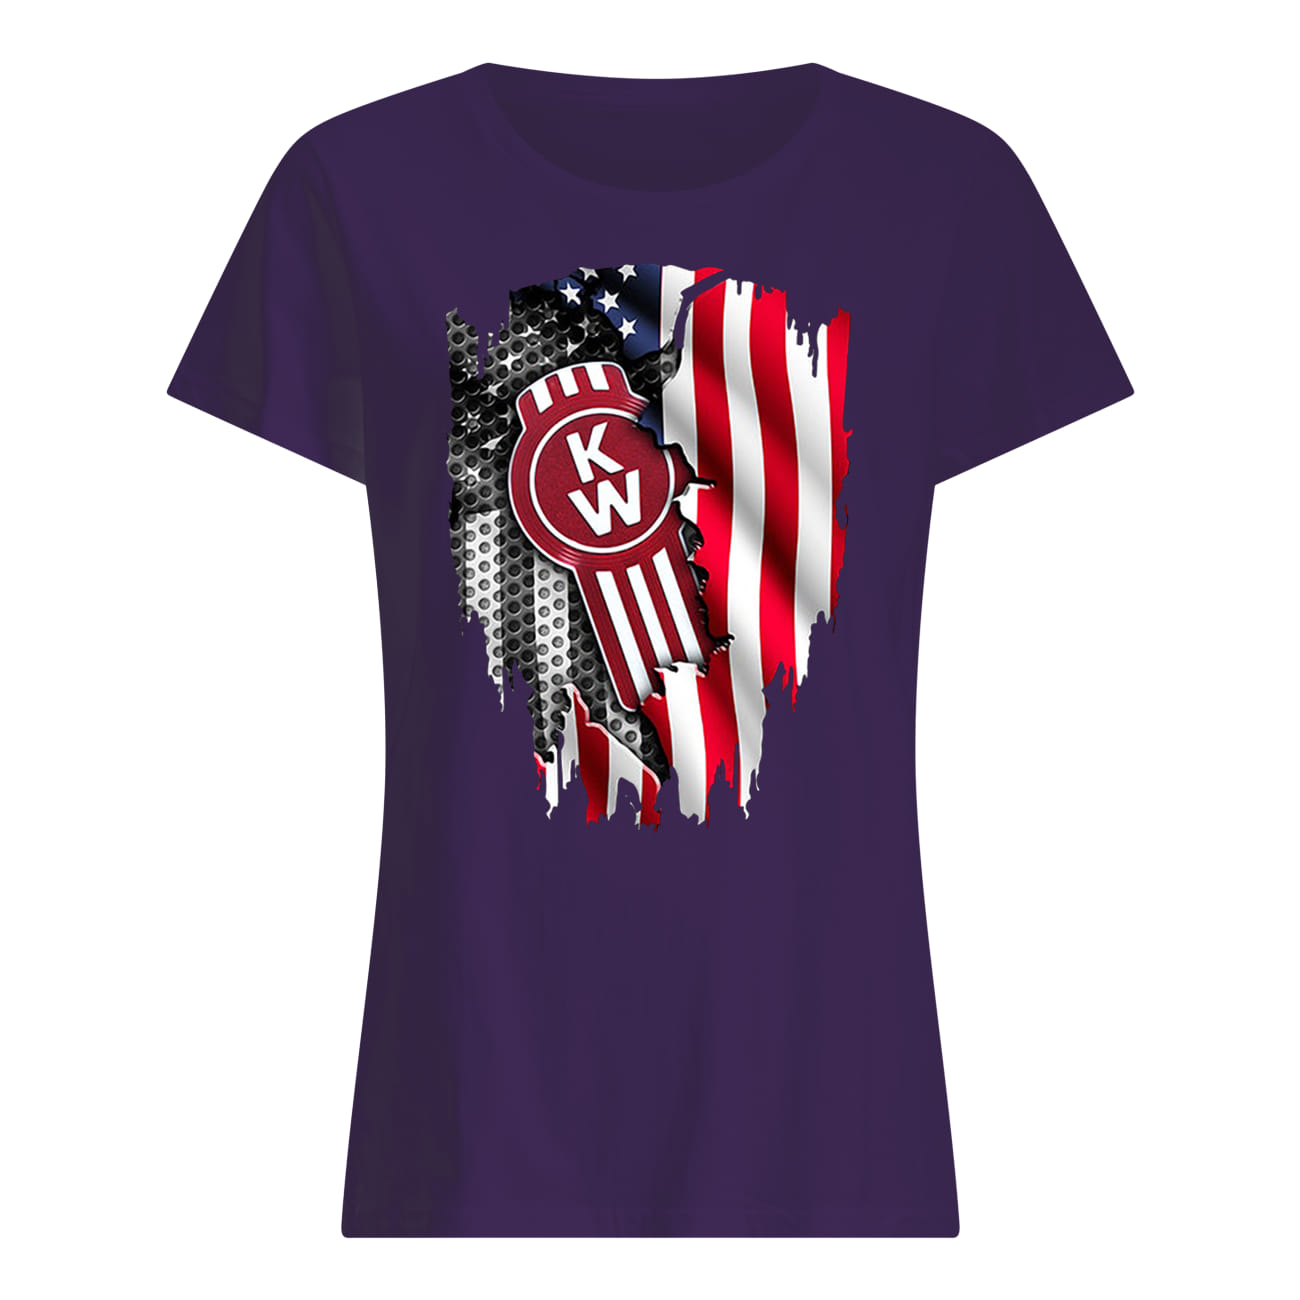 Kenworth trucks the world's best inside american flag lady shirt